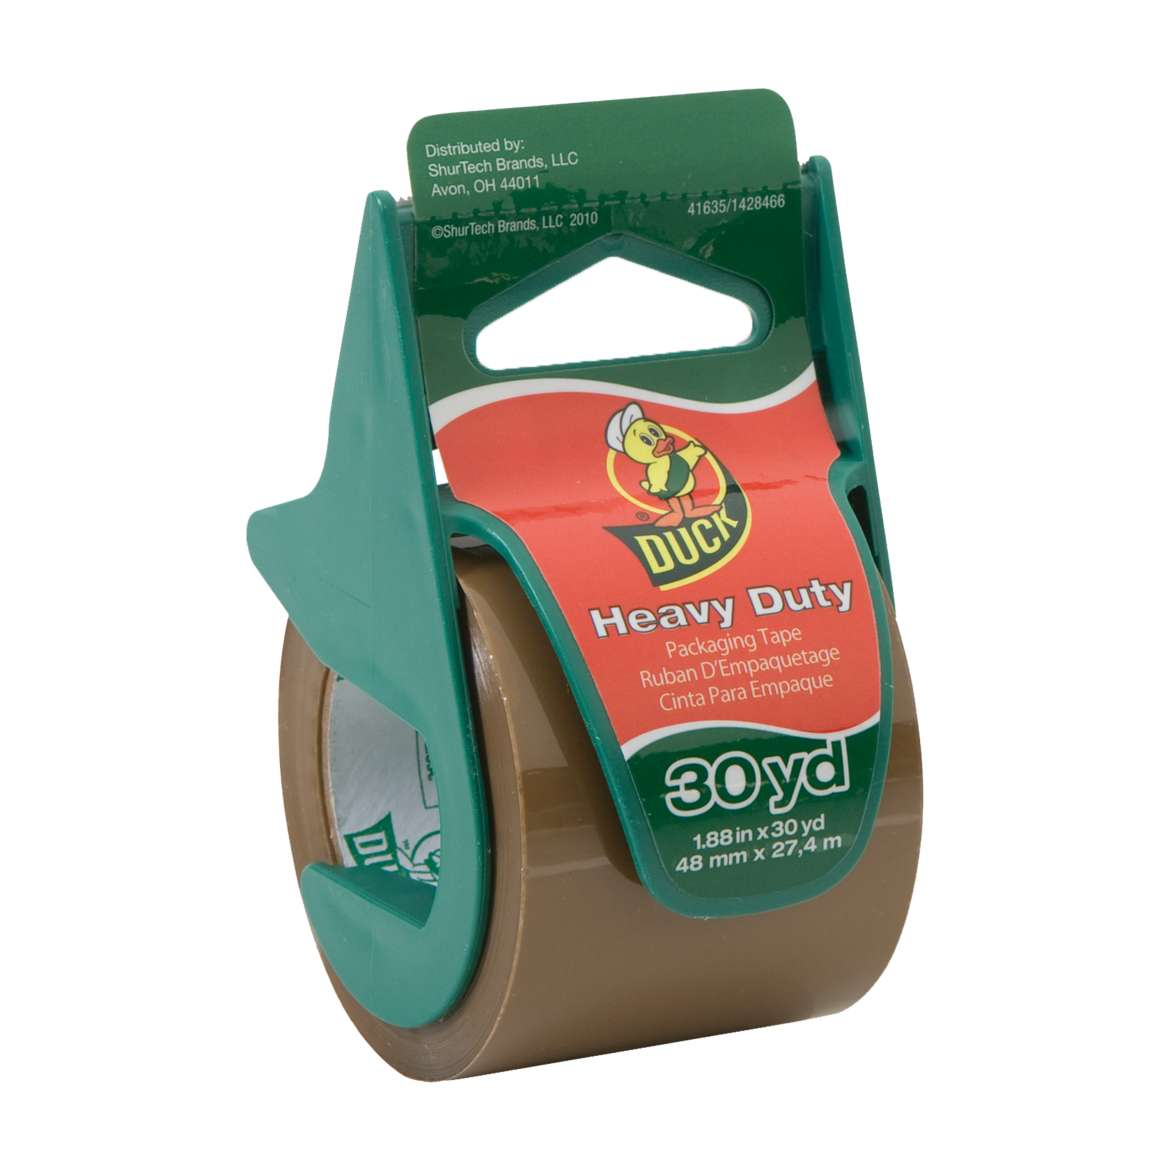 Duck® Brand Heavy Duty Packaging Tape with Dispenser - Tan, 1.88 in. x 30 yd. Image